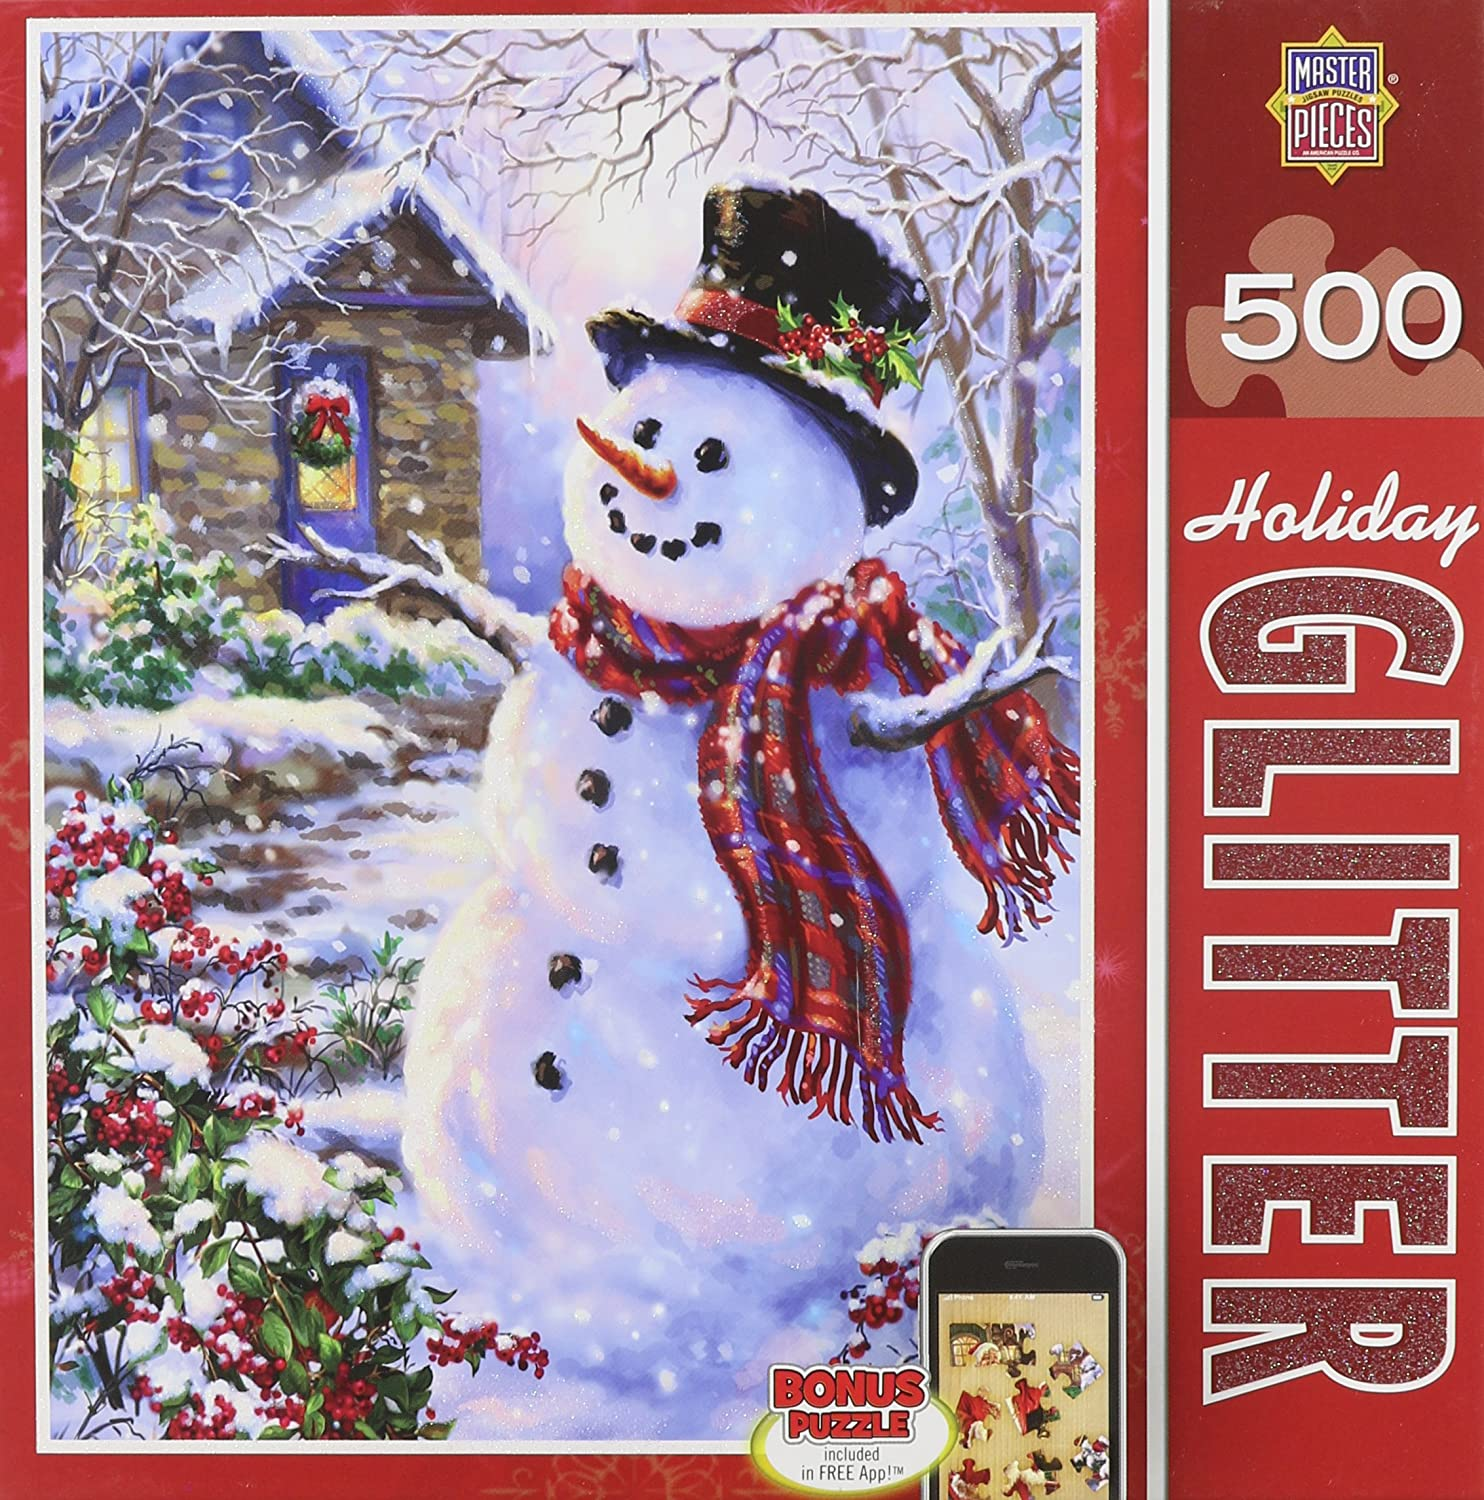 Holiday Glitter Let it Snow - Snowman 500 Piece Jigsaw Puzzle